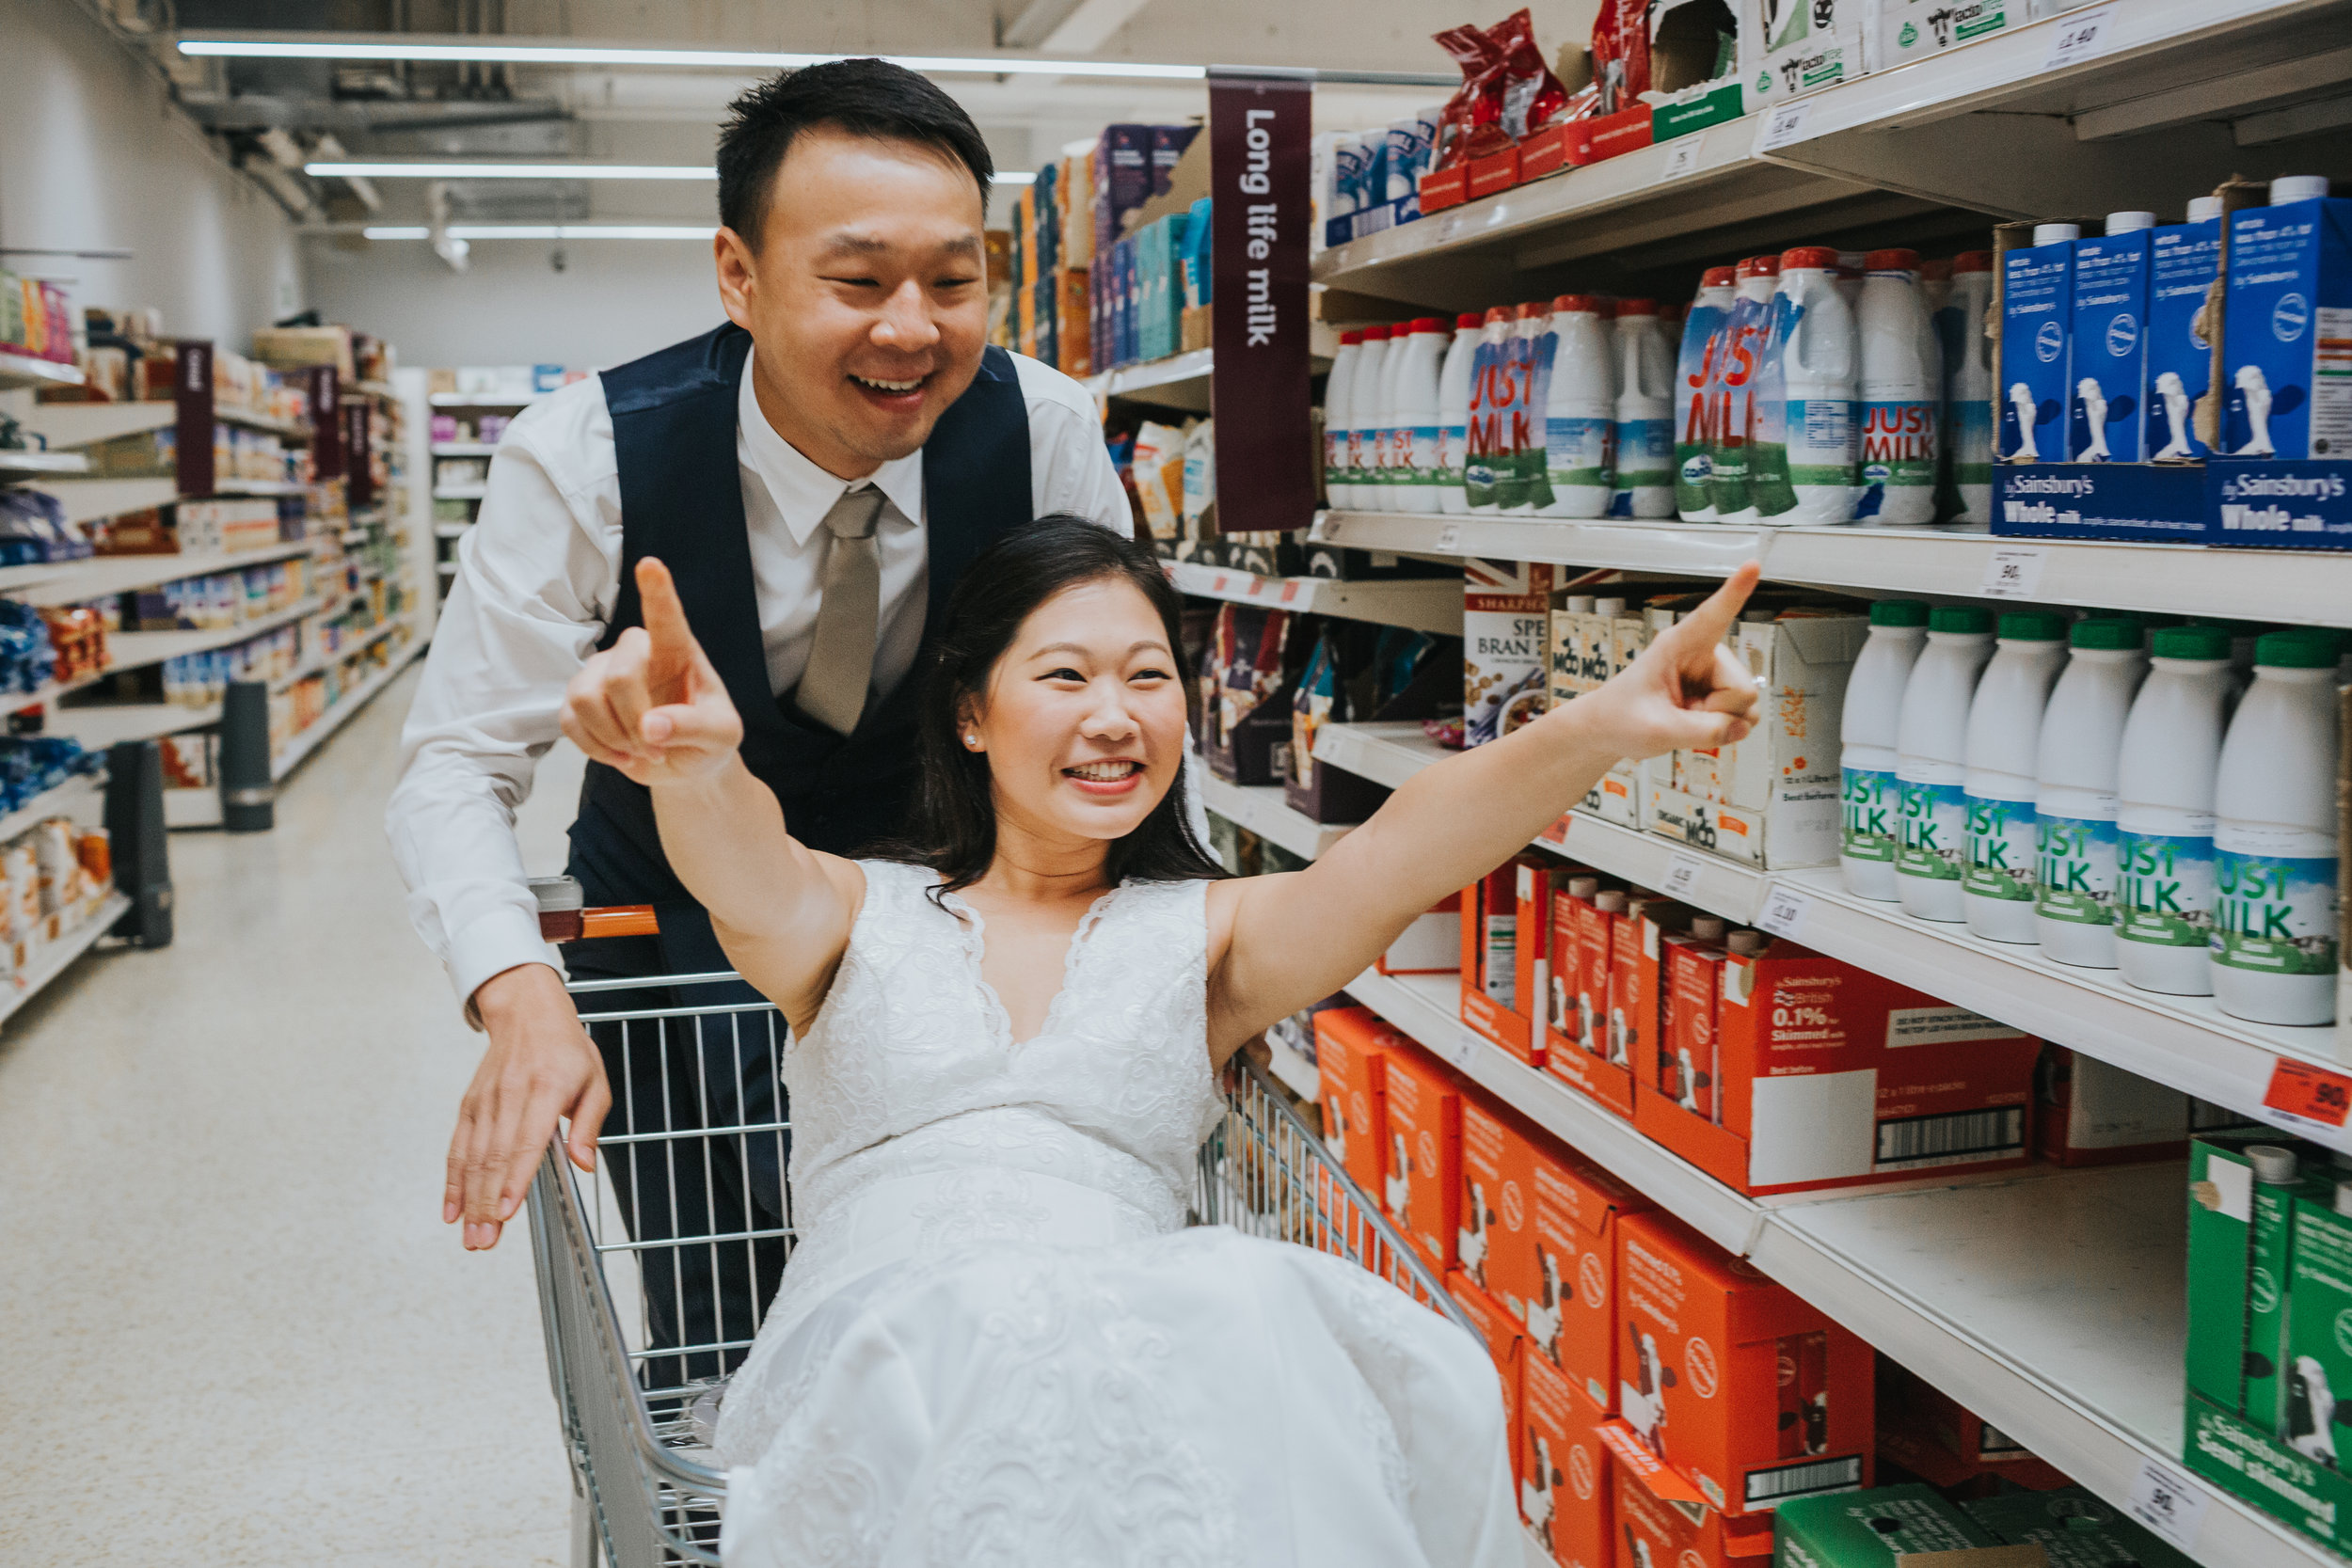 Bride poses in rock and roll pose as Groom pushes her down the aisle in shopping trolley.